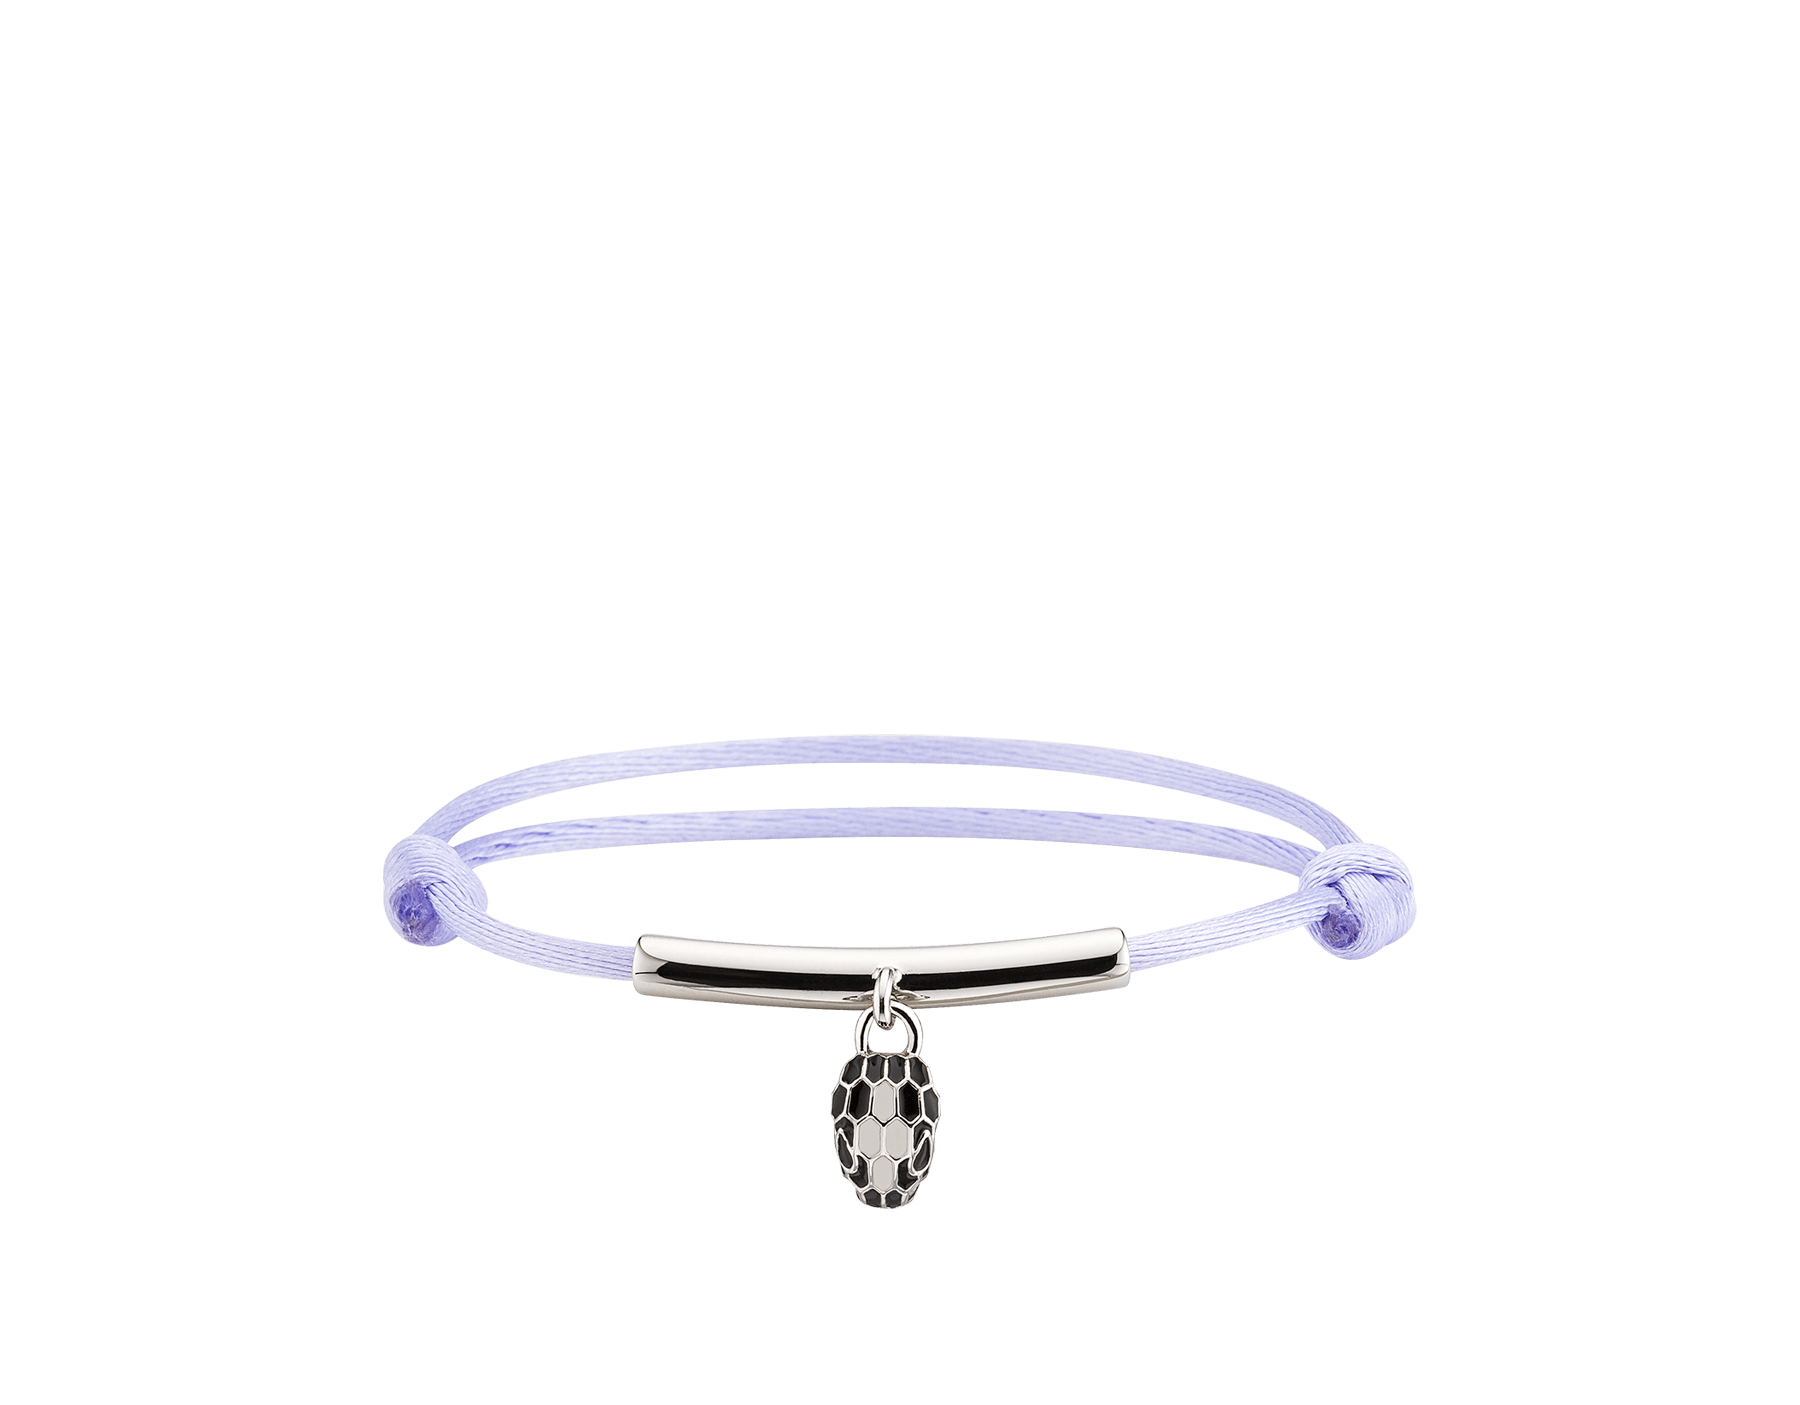 """""""Serpenti Forever"""" bracelet in daisy topaz silk with a palladium plated brass plate and an iconic snakehead charm in black and white agate enamel and black enamel eyes. SERP-MINISTRINGb image 2"""